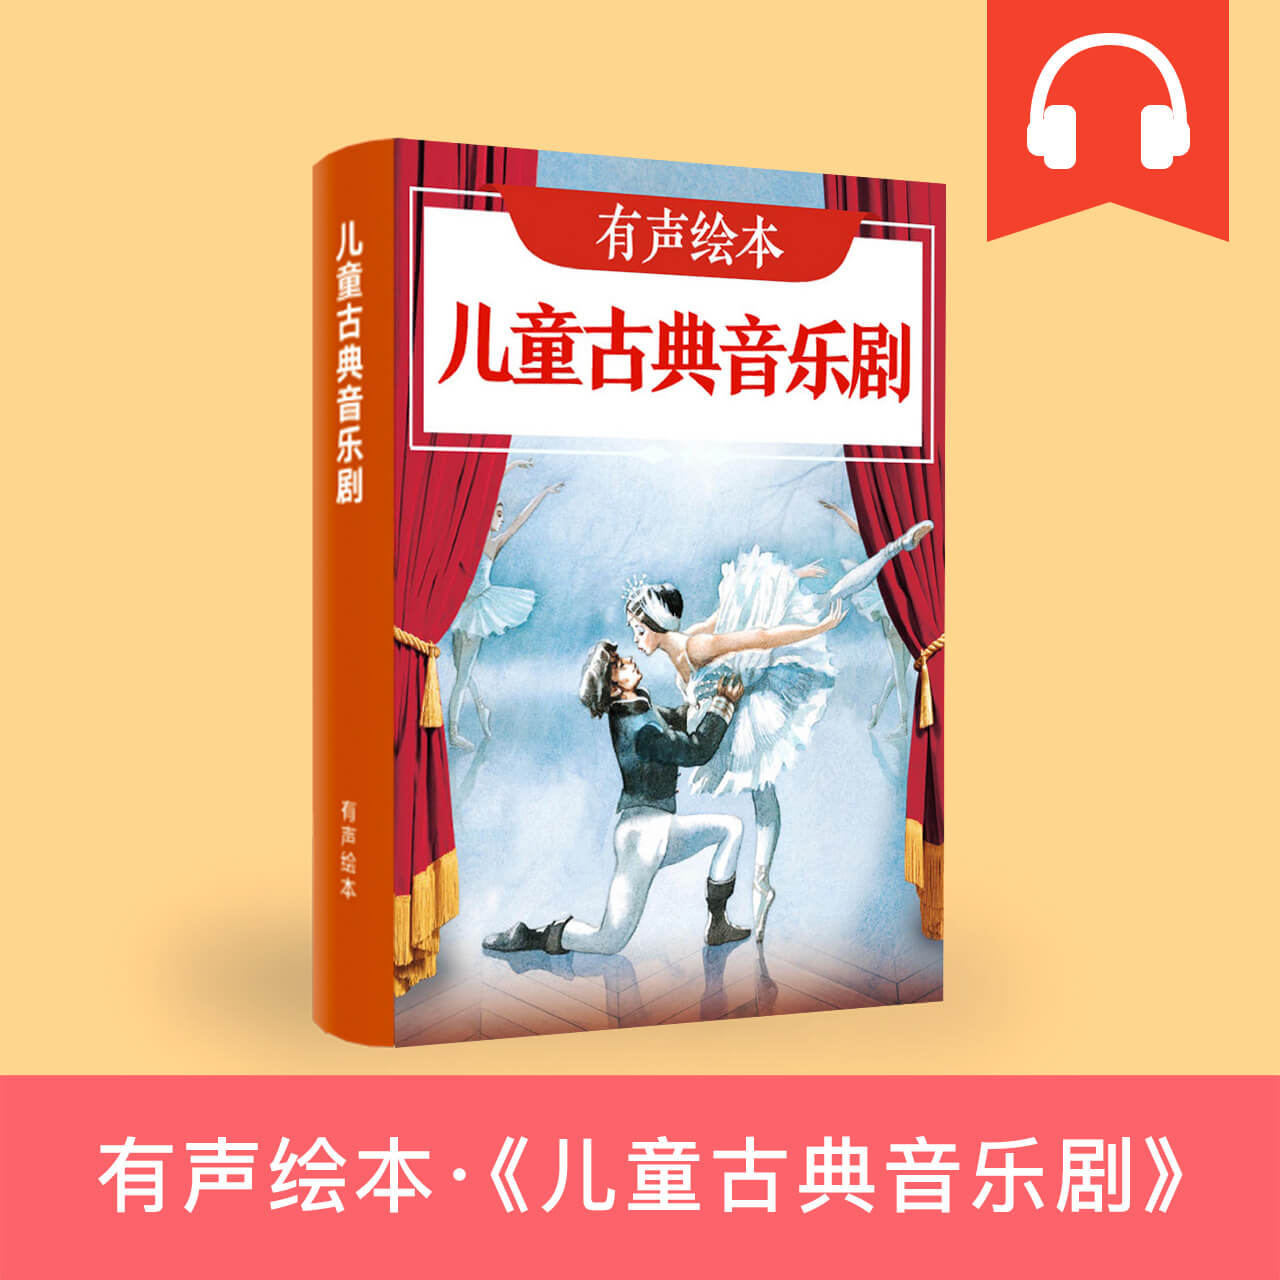 Childrens classic musical story audio picture book childrens Swan Lake Nutcracker Cinderella Luo Ji Thinking get course app recharge card gift card primary school students world famous musical